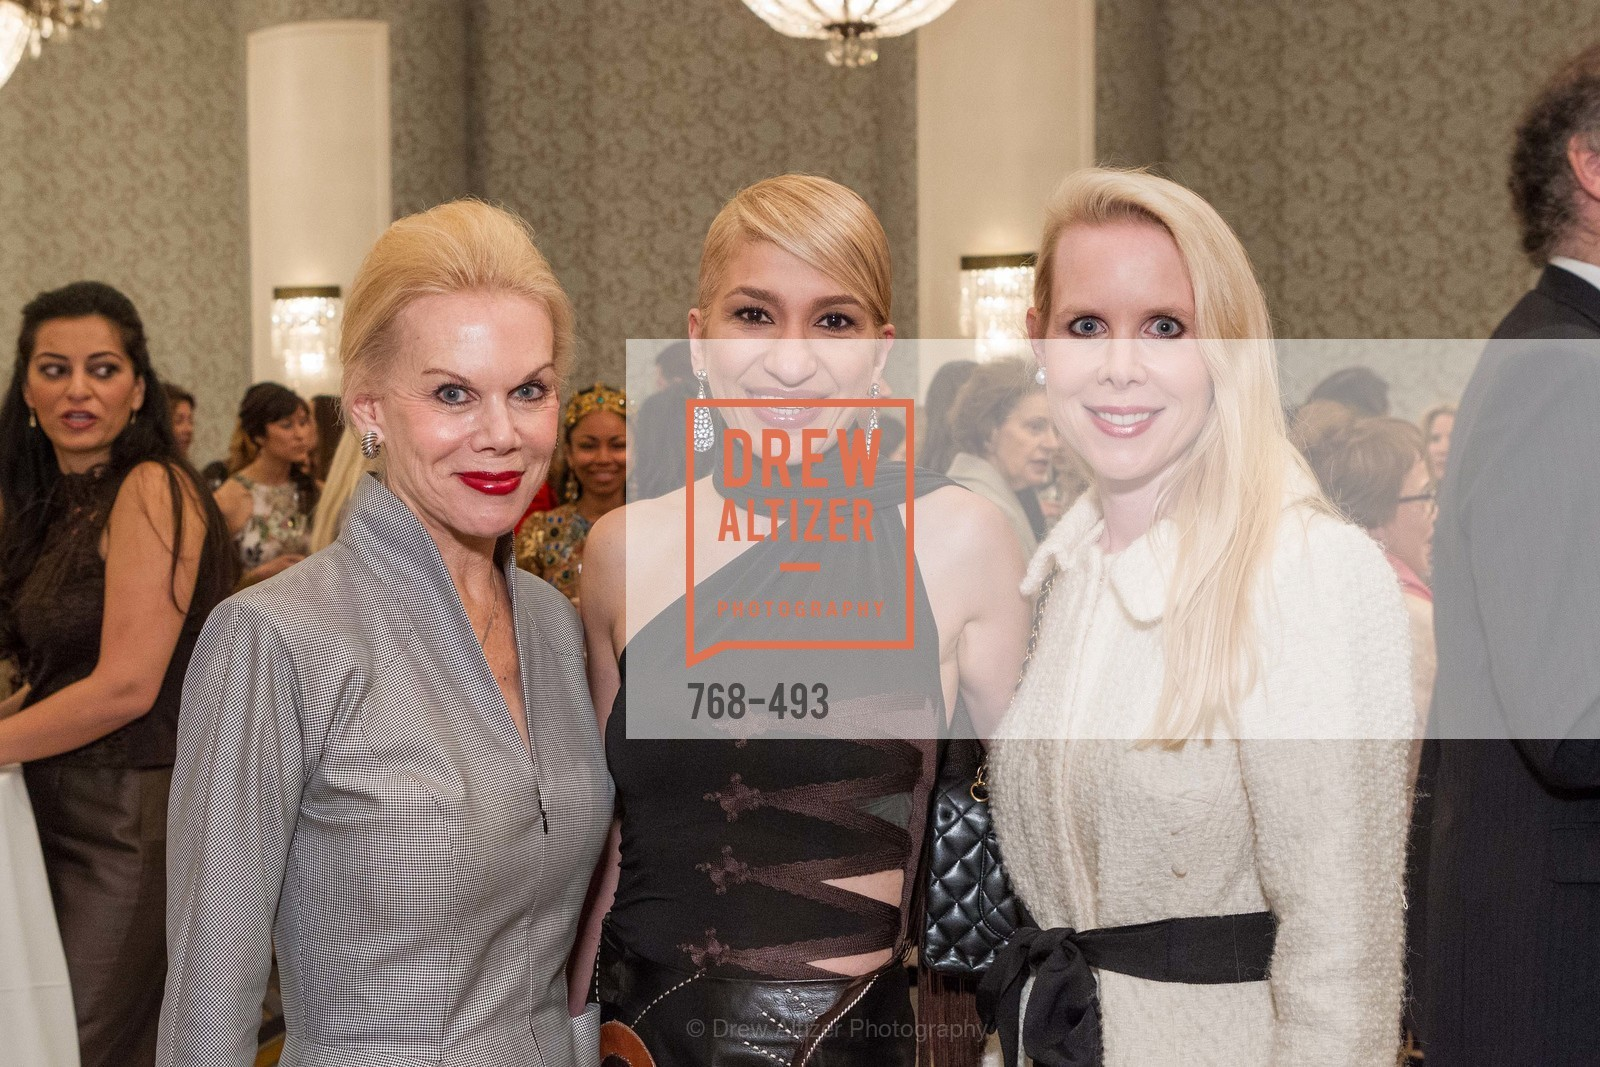 Sandra Farris, Navid Armstrong, Shannon Cronan, SAN FRANCISCO BALLET AUXULIARY 2014 Fashion Show, US. The Fairmont, April 3rd, 2014,Drew Altizer, Drew Altizer Photography, full-service agency, private events, San Francisco photographer, photographer california